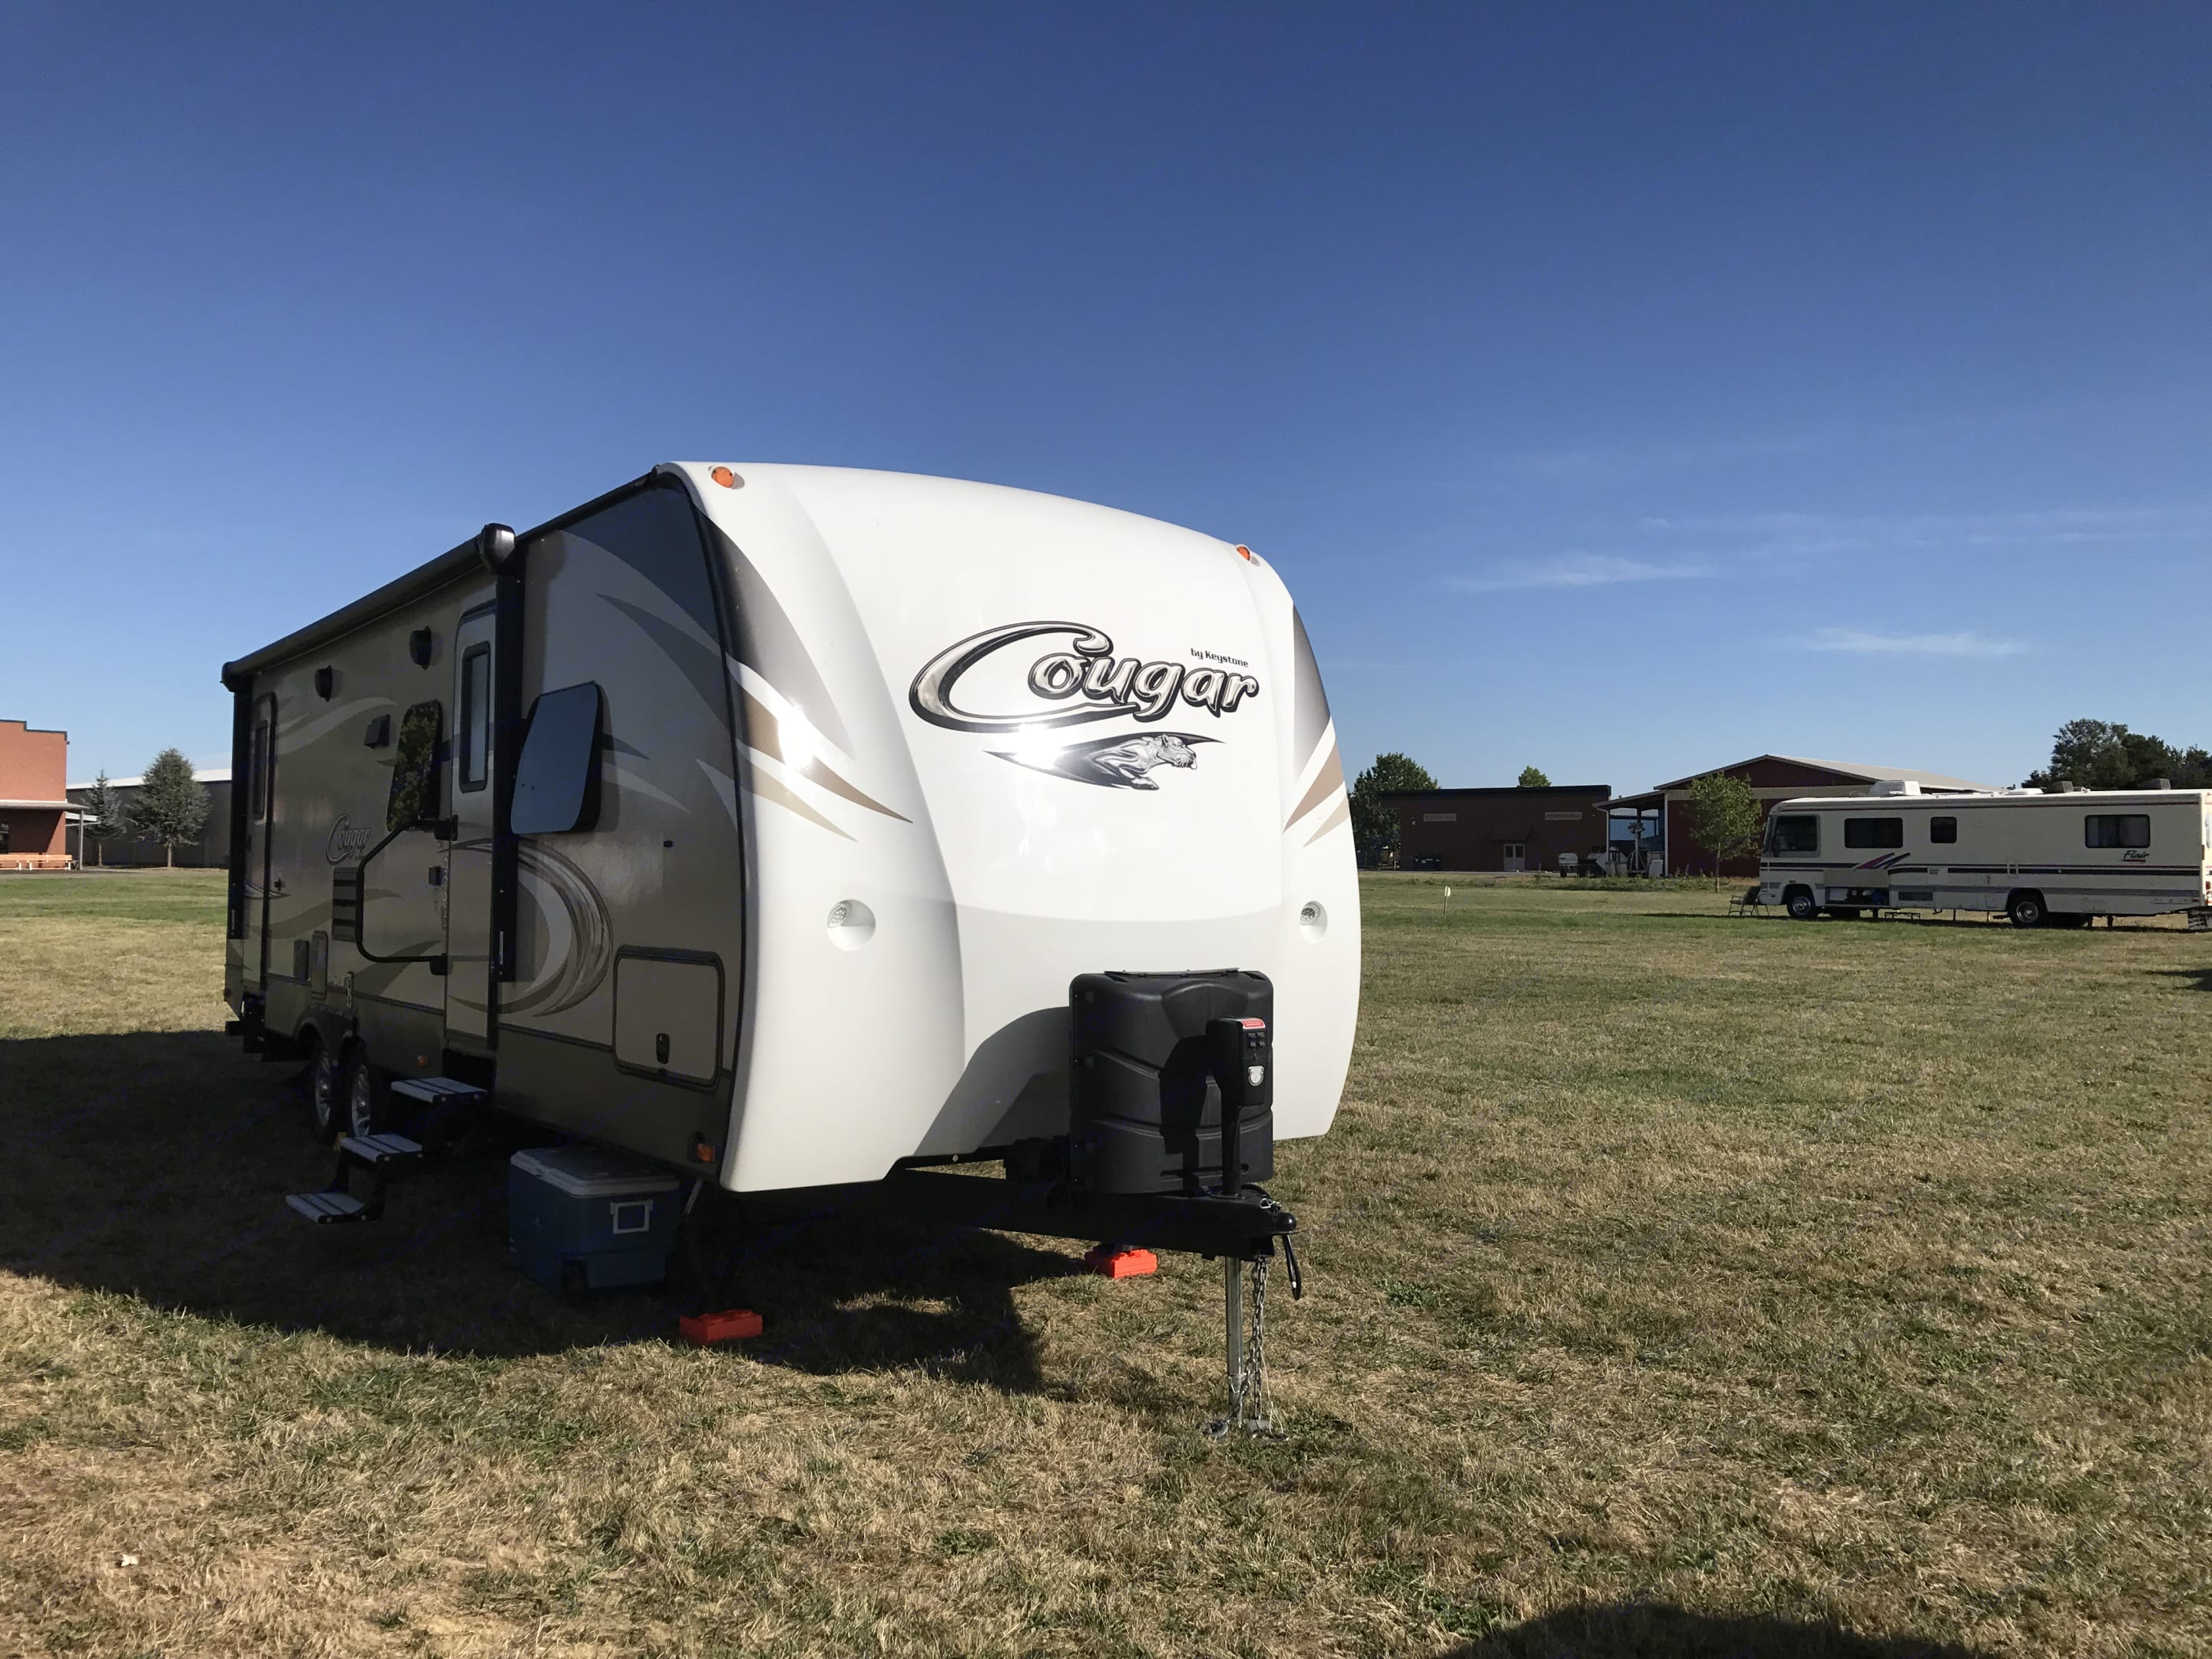 Dry camping in Salem, OR during the Great Solar Eclipse (which was amazing, by the way). . Keystone Cougar 2017